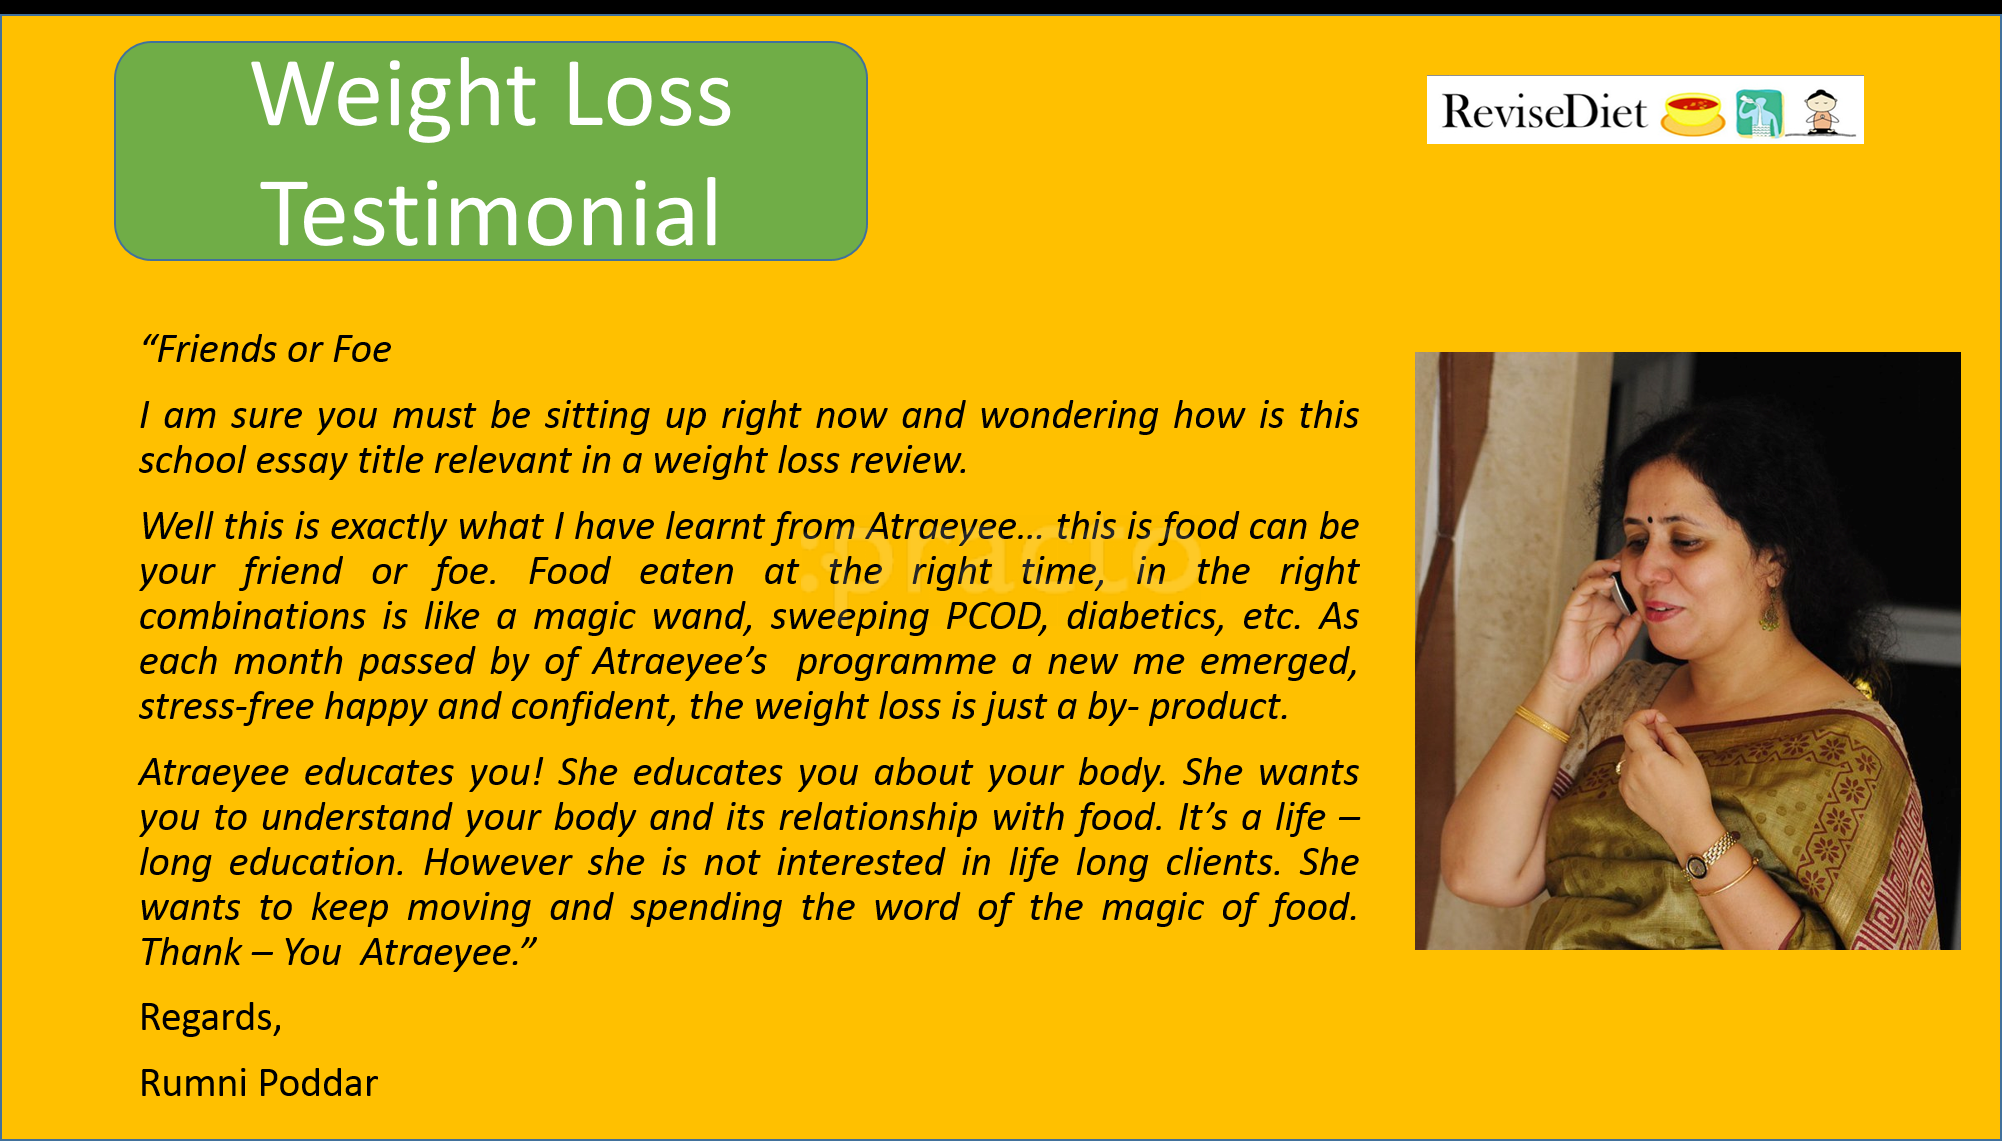 Only eating cereal lose weight image 2